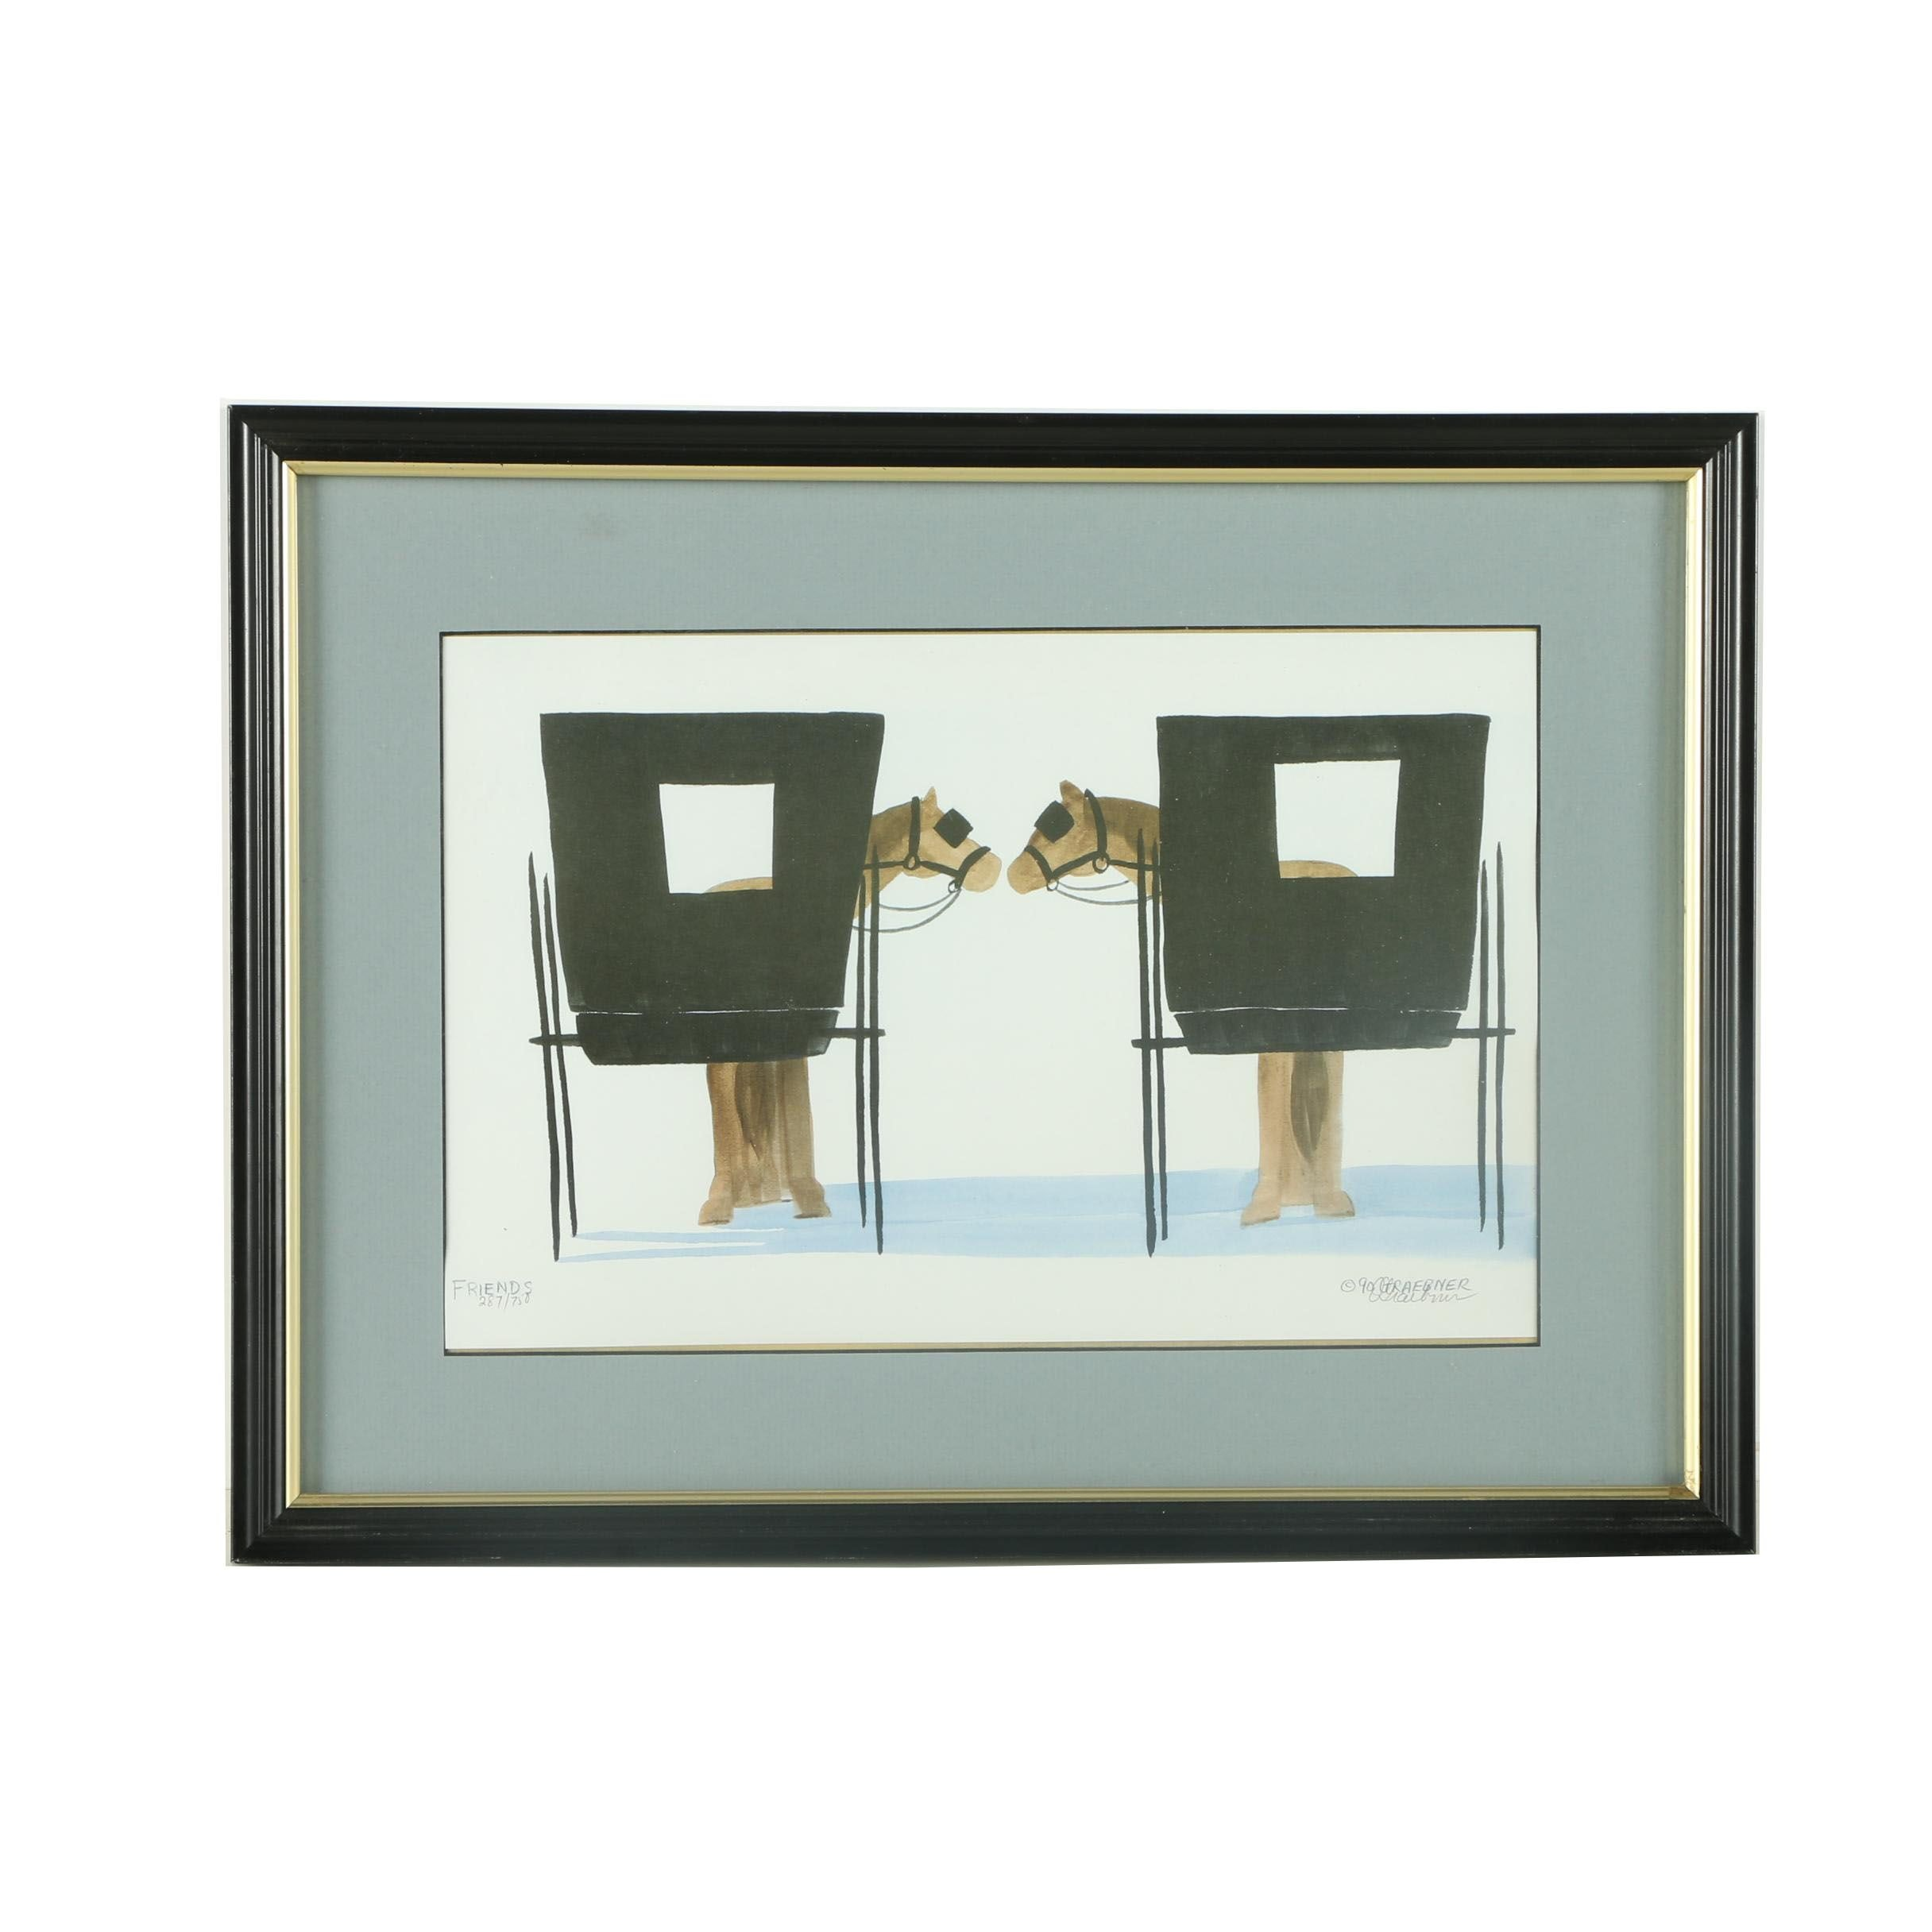 """Graebner Limited Edition Offset Lithograph """"Friends"""""""